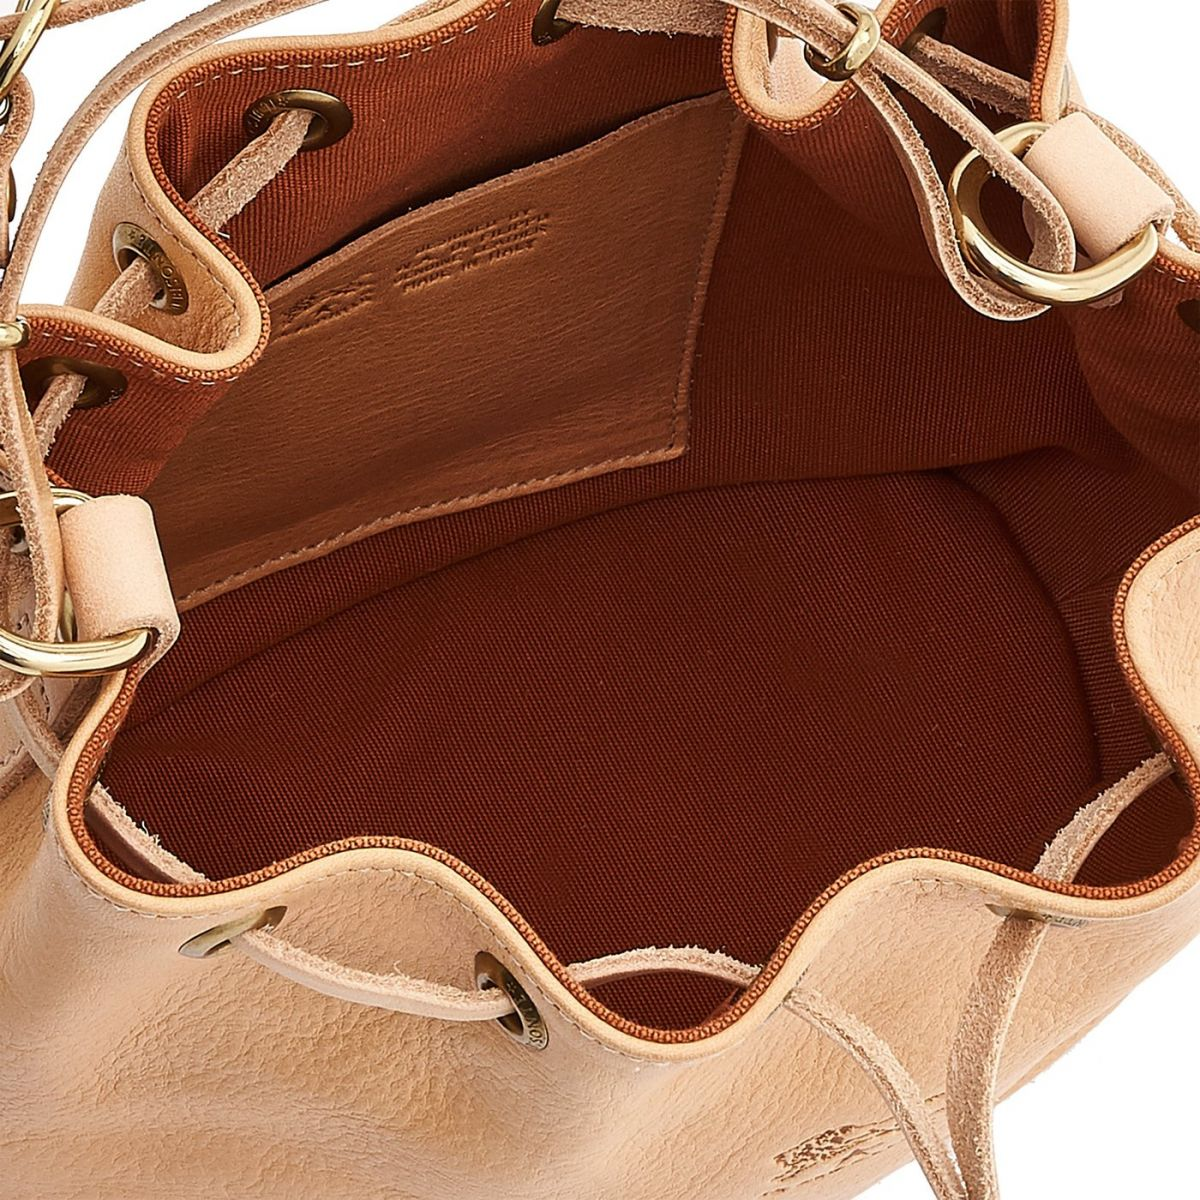 Women's Bucket Bag in Cowhide Double Leather BBU001 color Natural | Details